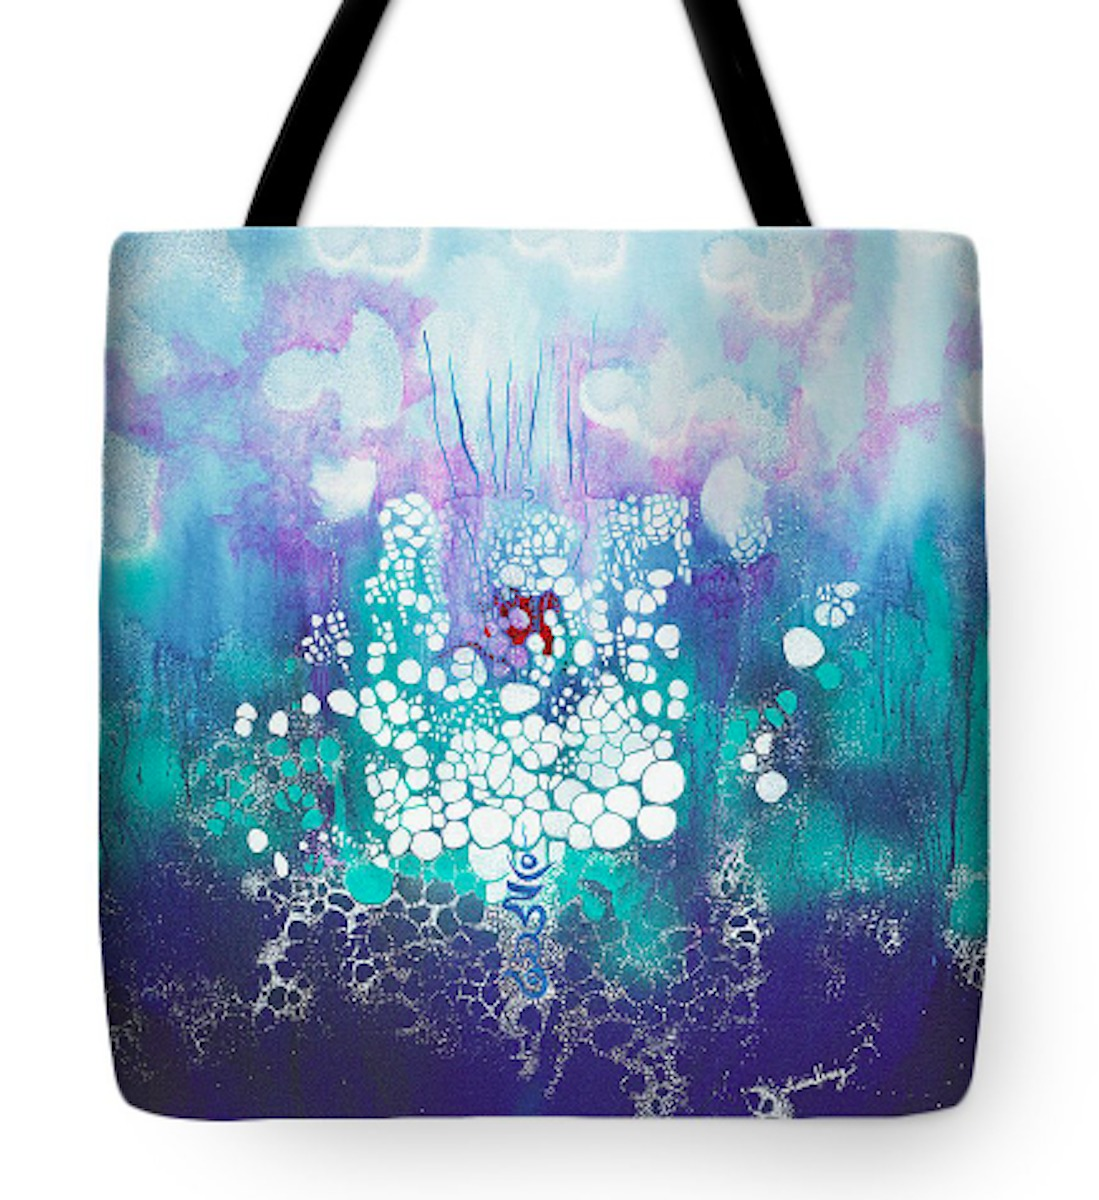 HUM Tote Bag (large view)